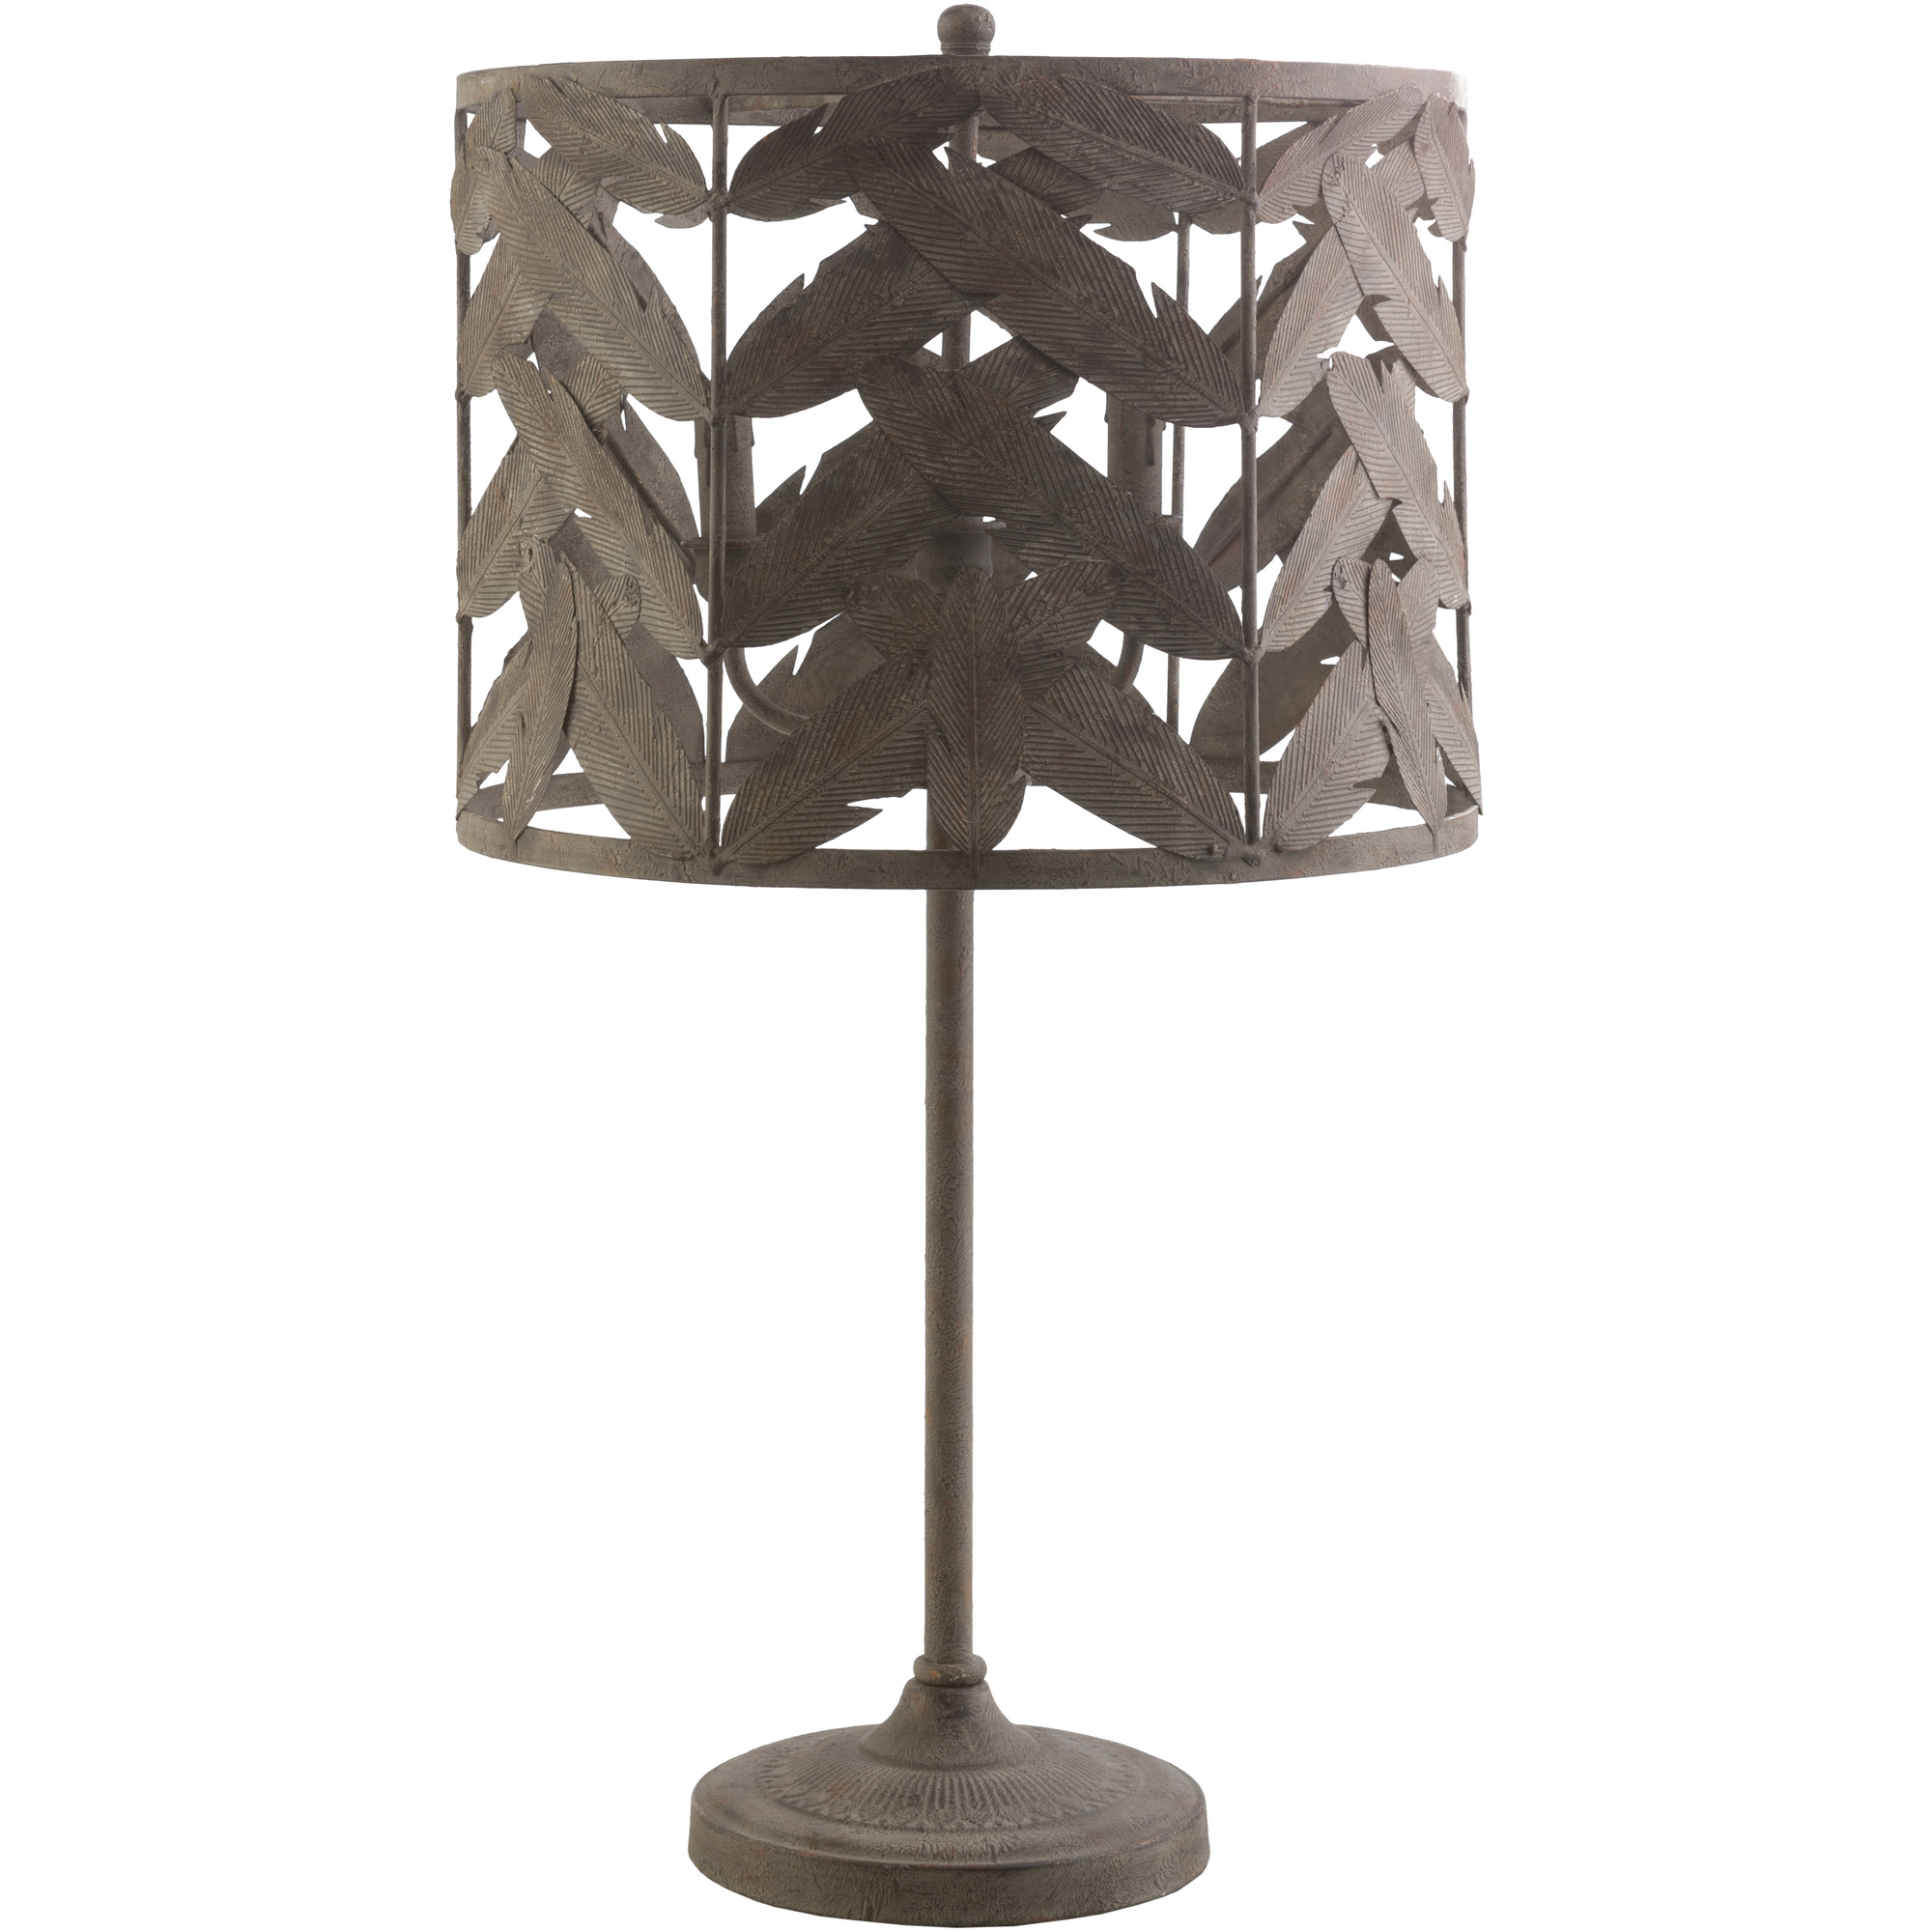 Art of Knot Edeline Novelty Table Lamp by Art of Knot